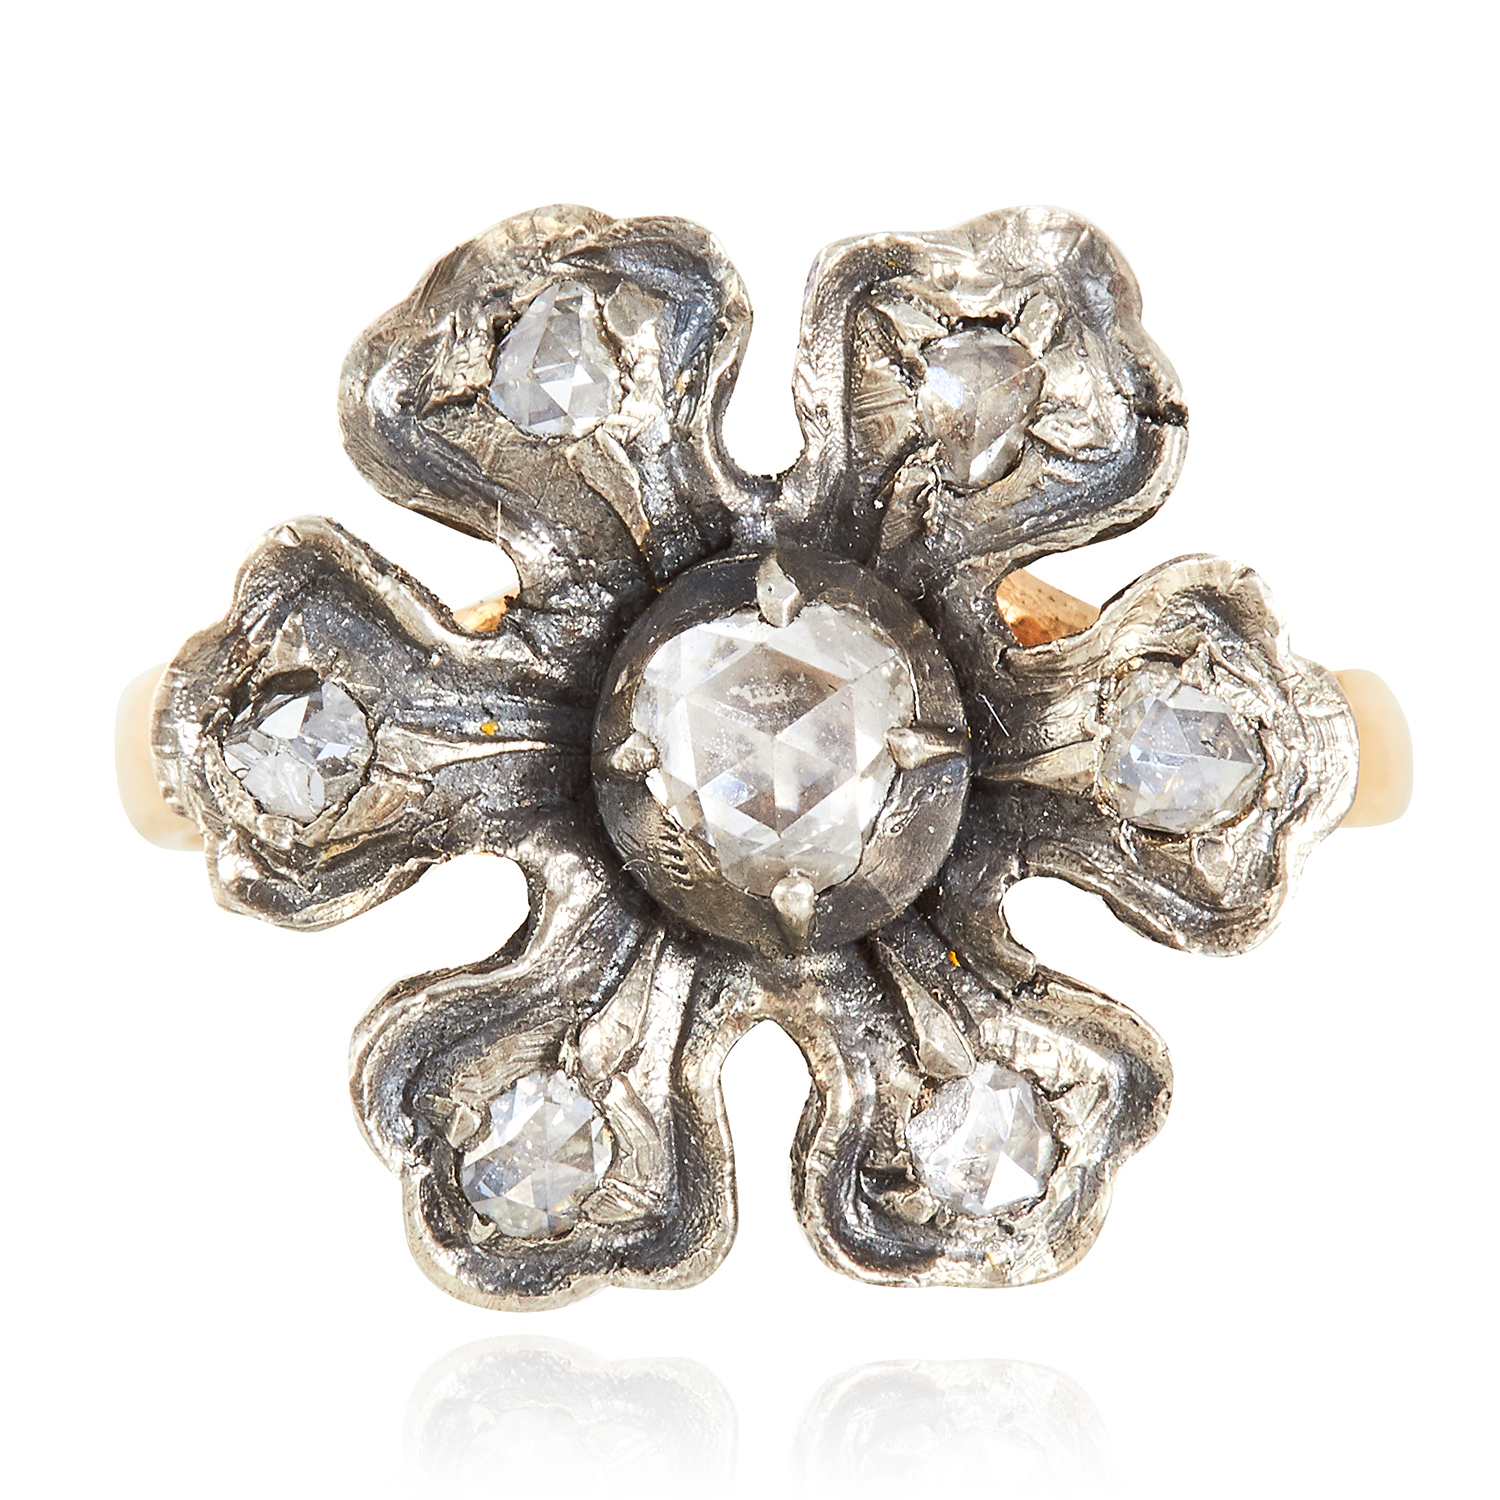 A DIAMOND RING in yellow gold, depicting a flower set with rose cut diamonds, unmarked, 4.52g.